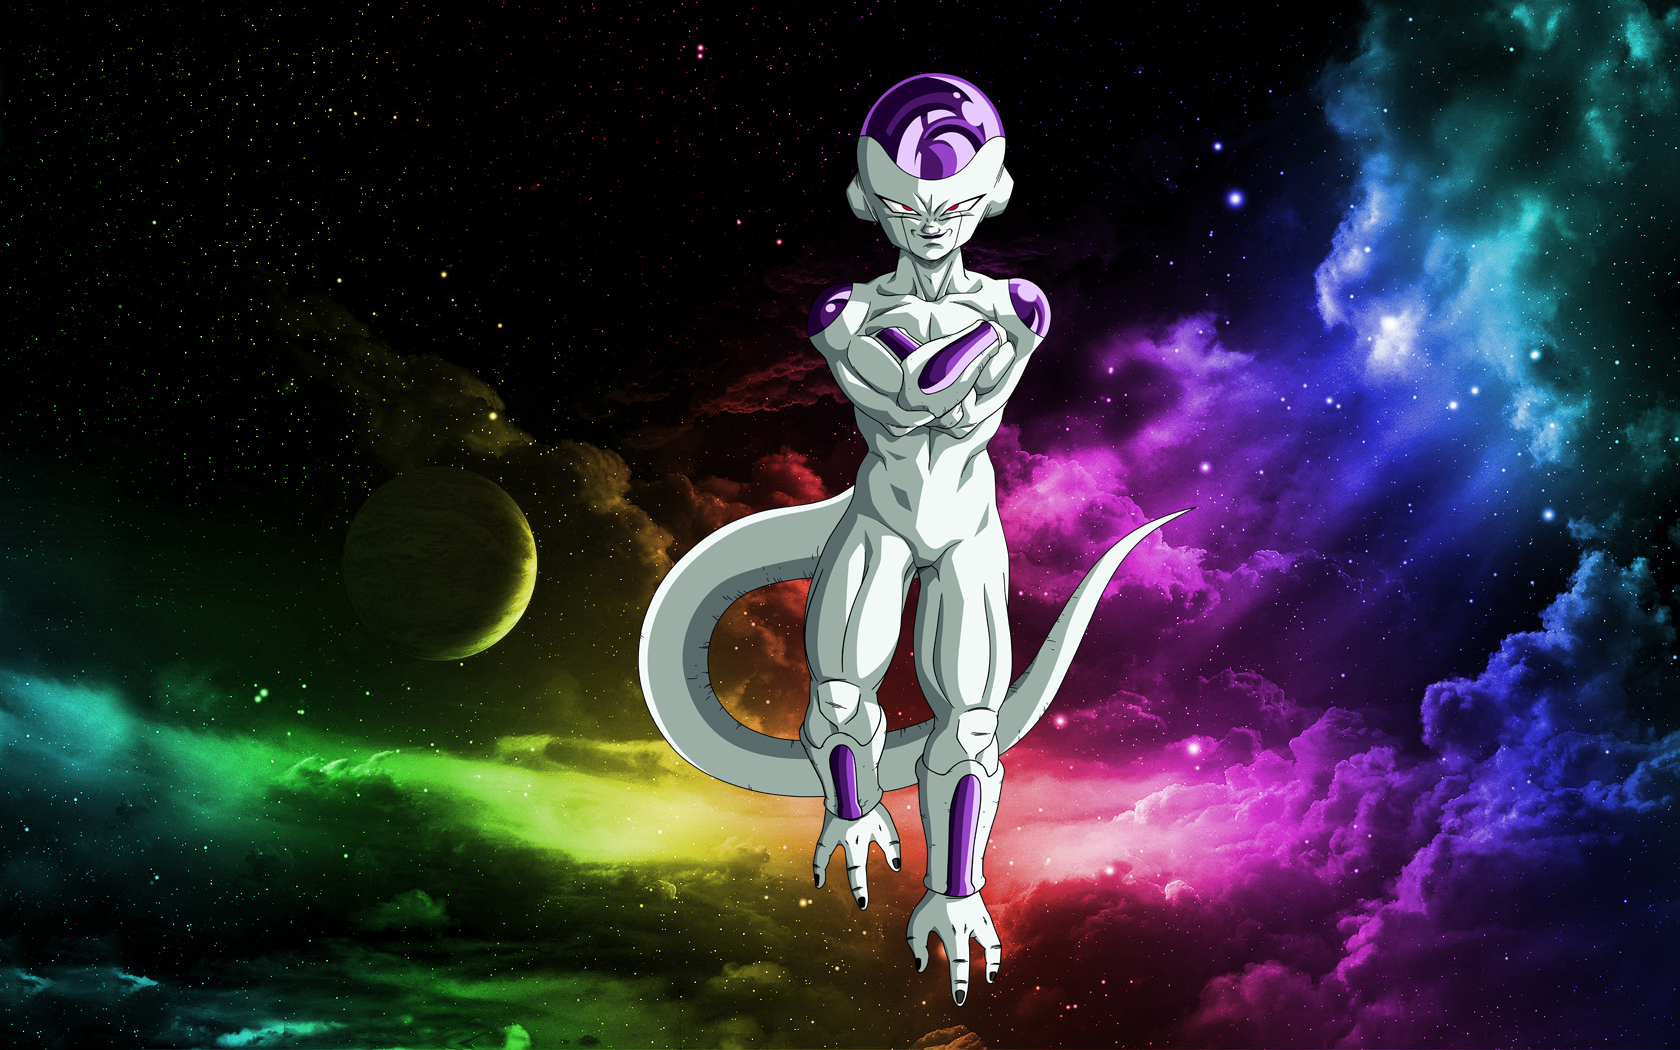 Dragon Ball Z Frieza Final Form Wallpaper By Marindusevic